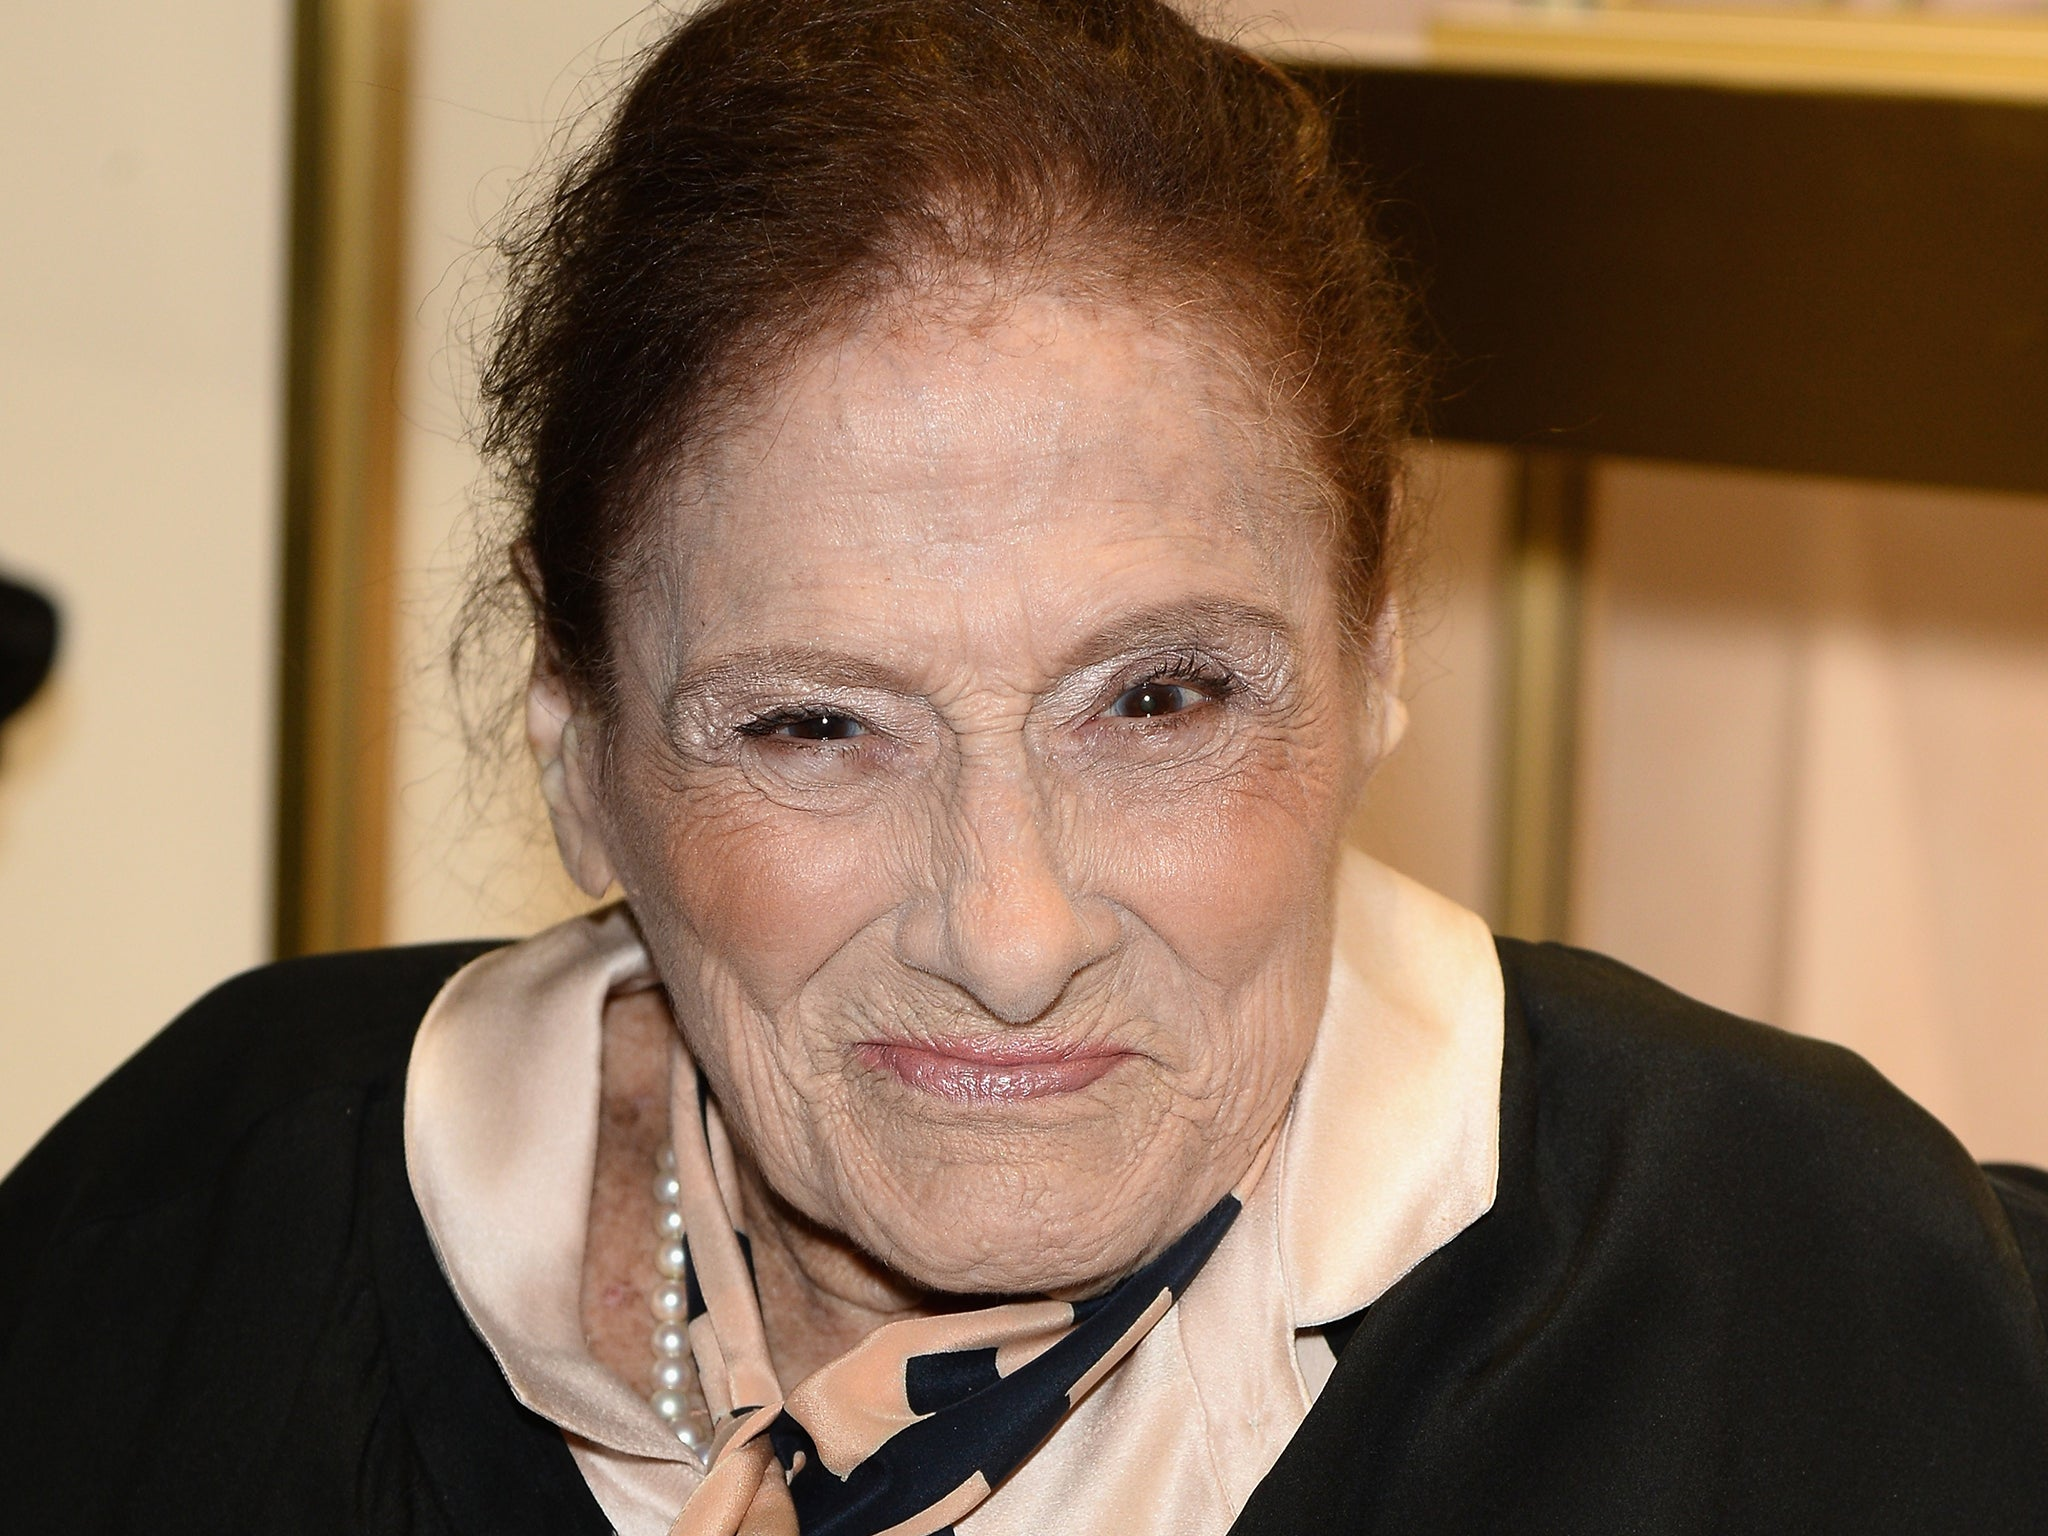 Gaby Aghion Fashion Designer Co Founder Of Chloe House Which Revitalised French Fashion In The 1950s The Independent